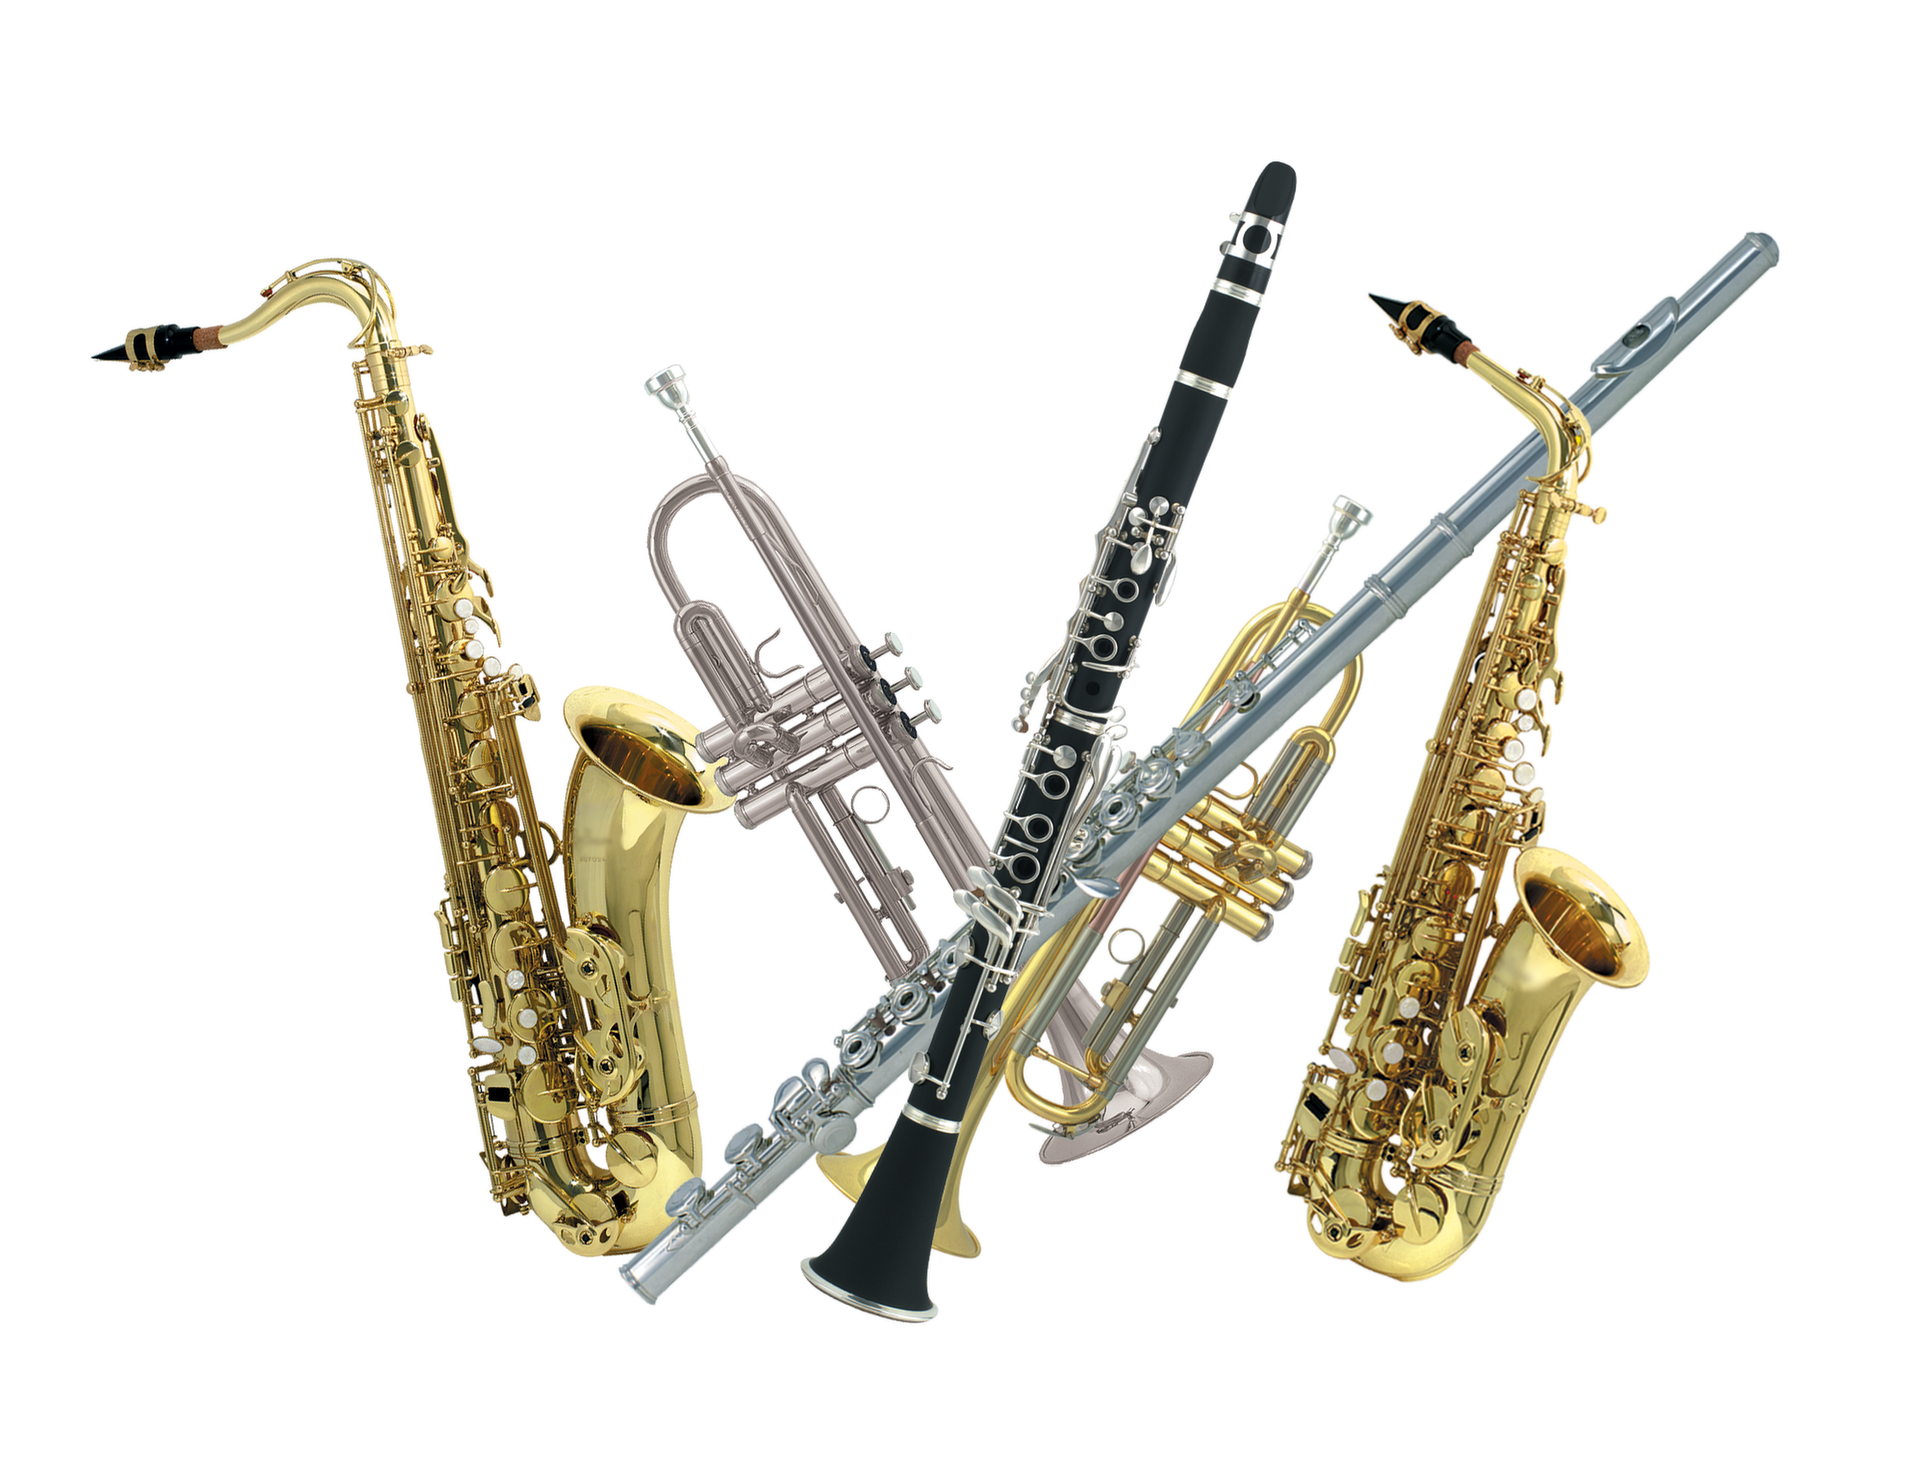 png transparent library Clarinet clipart oboe. Brass woodwind instrument